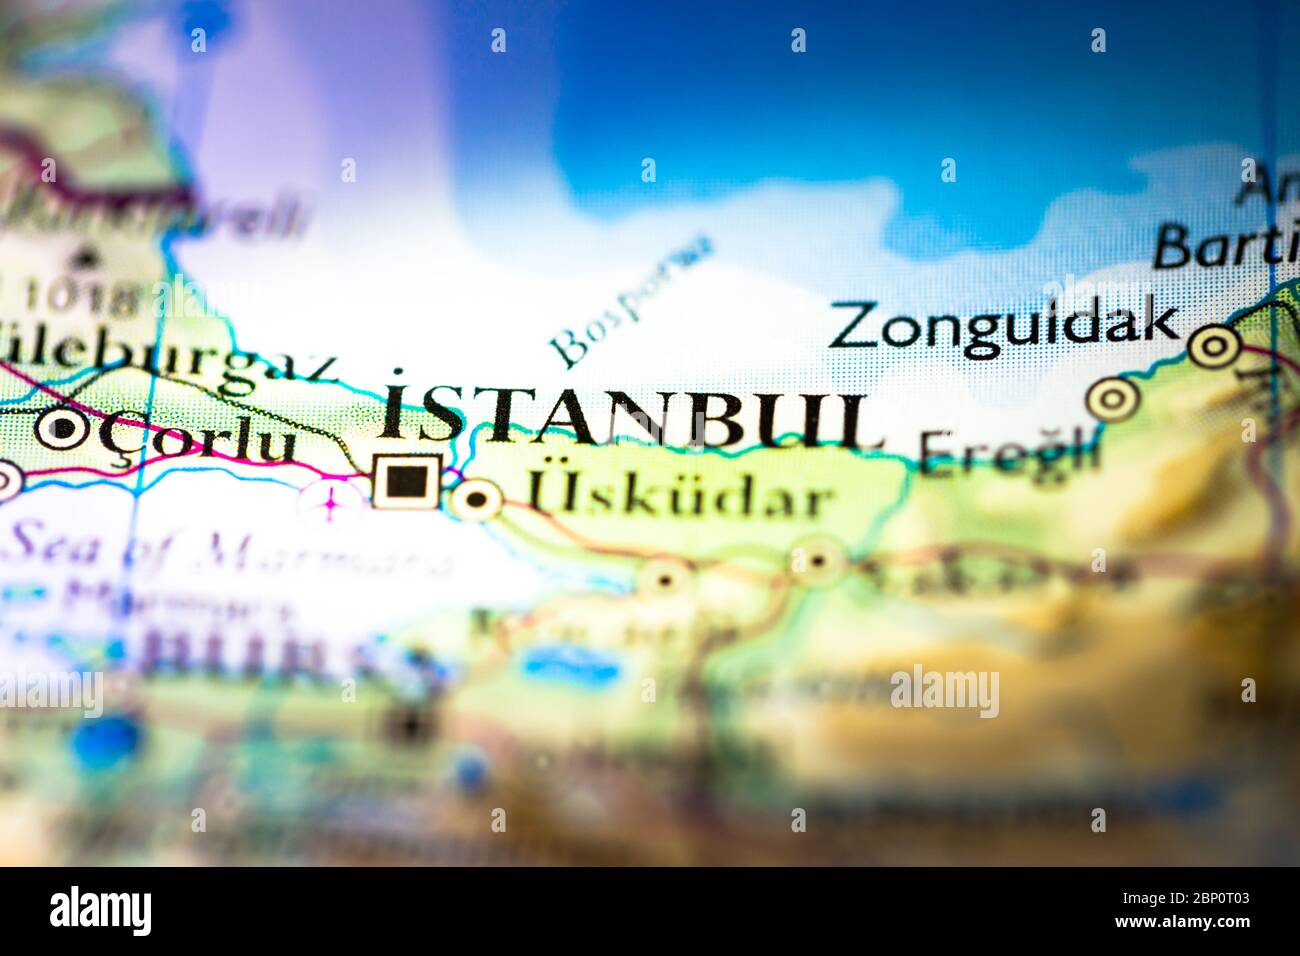 Picture of: Shallow Depth Of Field Focus On Geographical Map Location Of Istanbul Byzantium Constantinople Turkey Asia Continent On Atlas Stock Photo Alamy